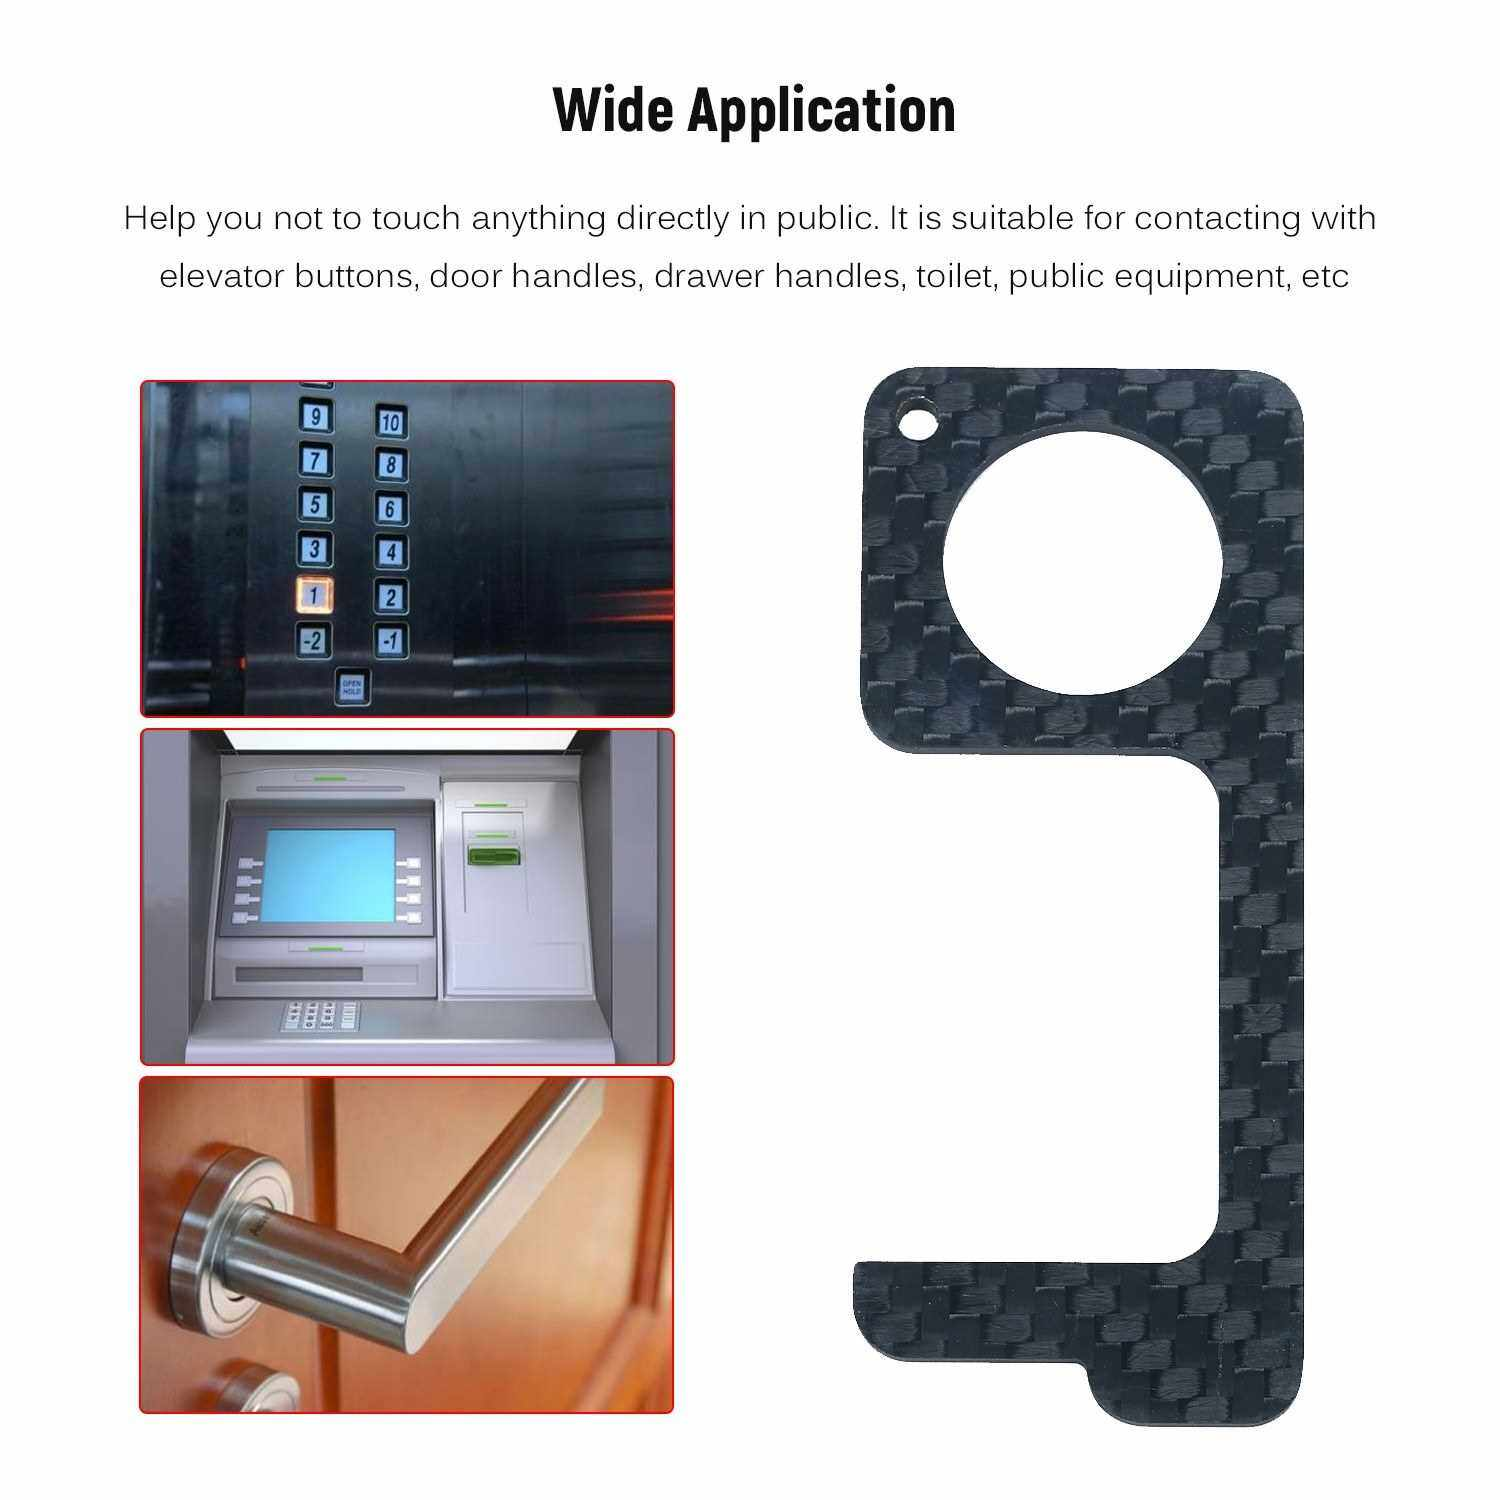 Best Selling Non-contact Safety Door Opener Portable Square Press Key Non-contact Press Tool for Door Handle Elevator Toilet in Public Carbon Fibre (Black)